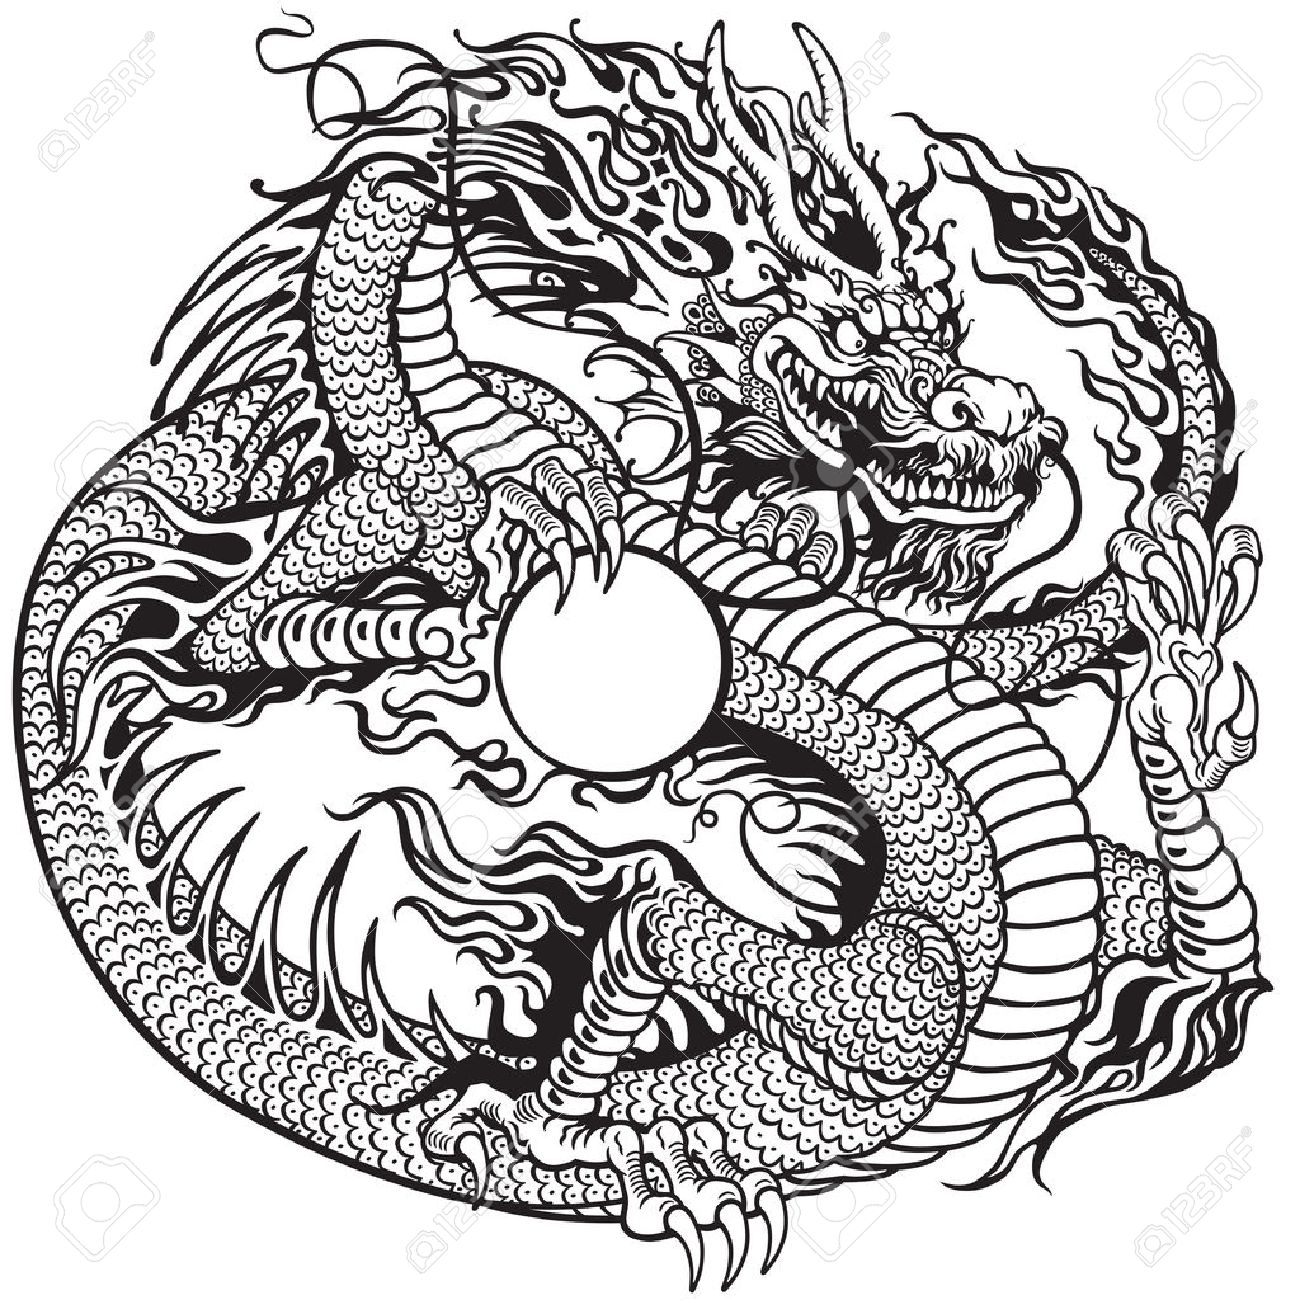 chinese dragon holding pearl, black and white tattoo illustration.